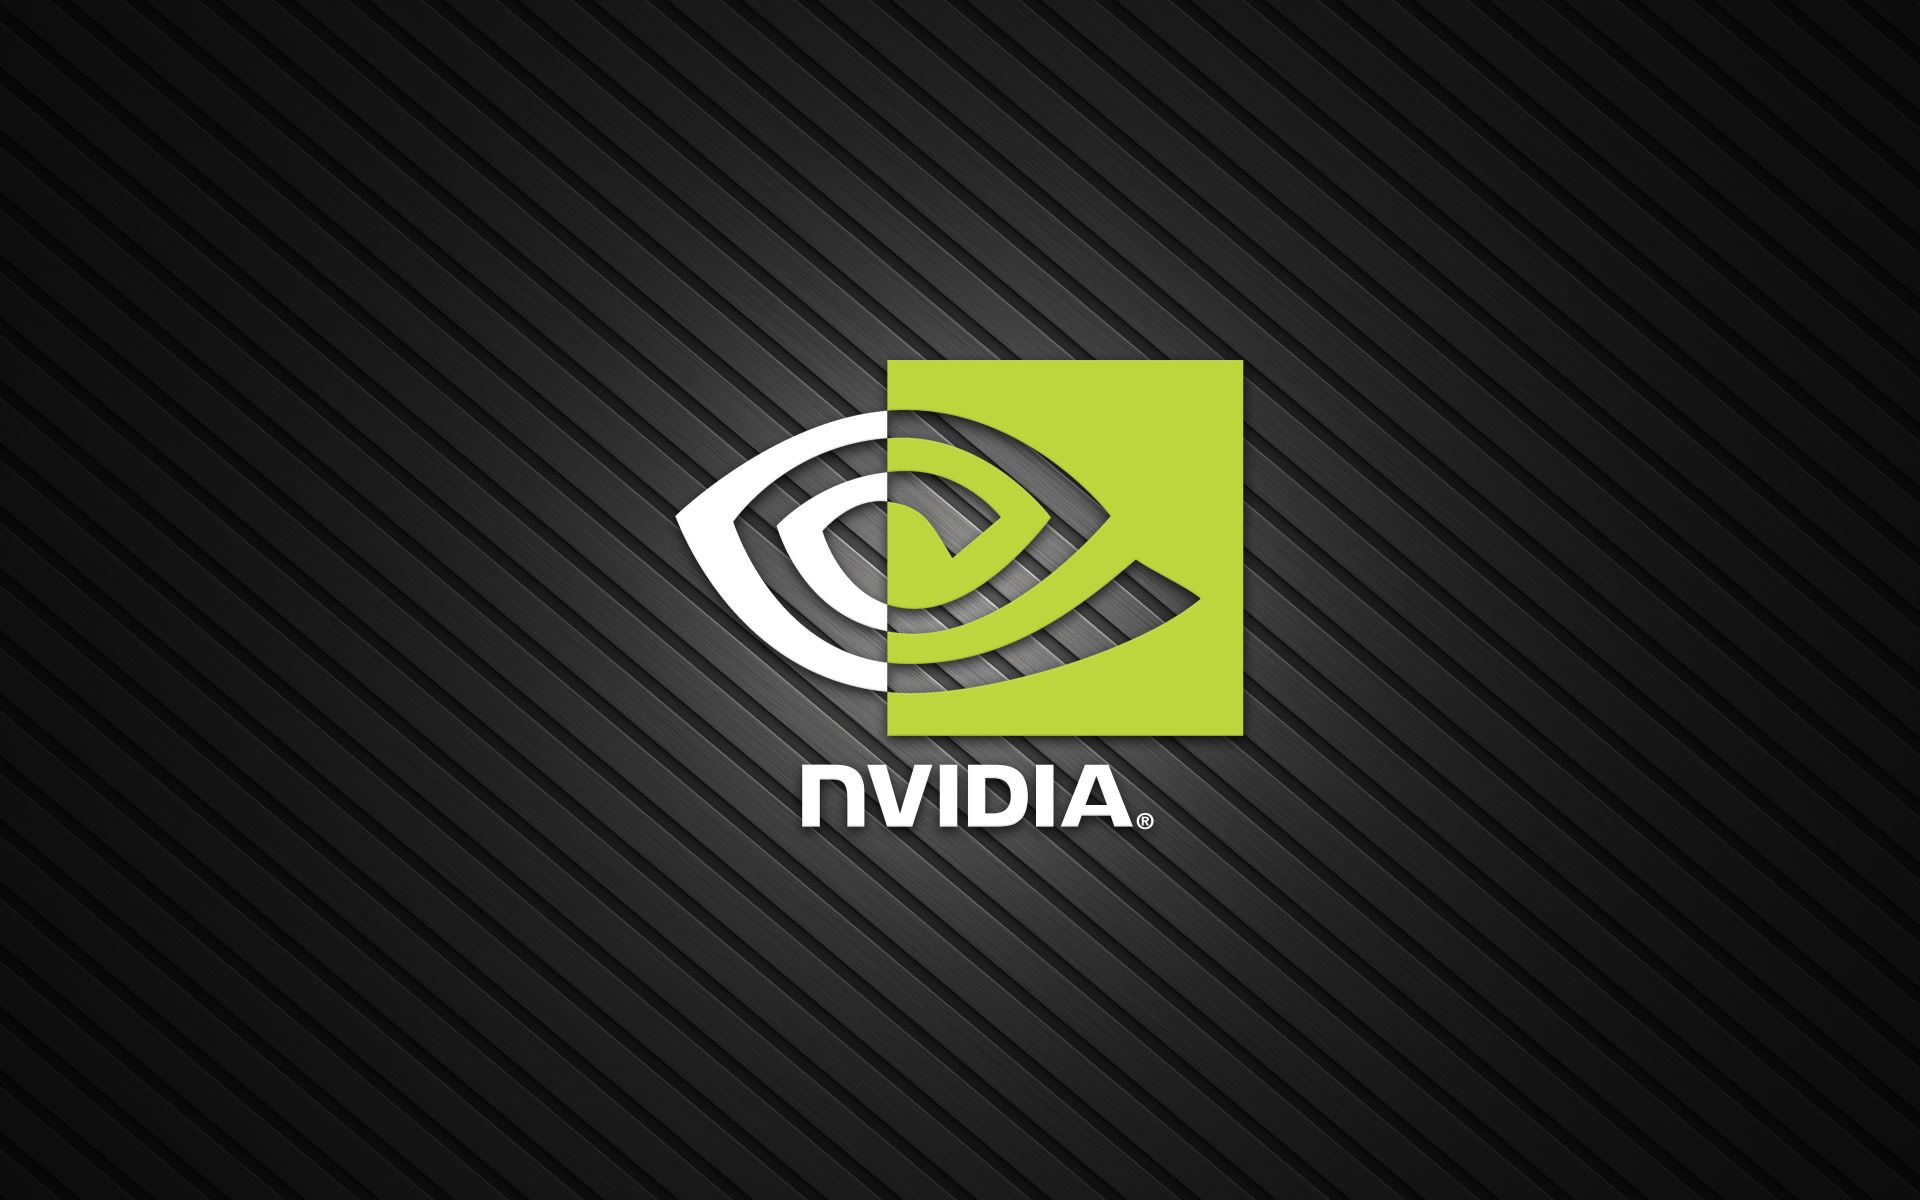 Nvidia Geforce Wallpapers Top Free Nvidia Geforce